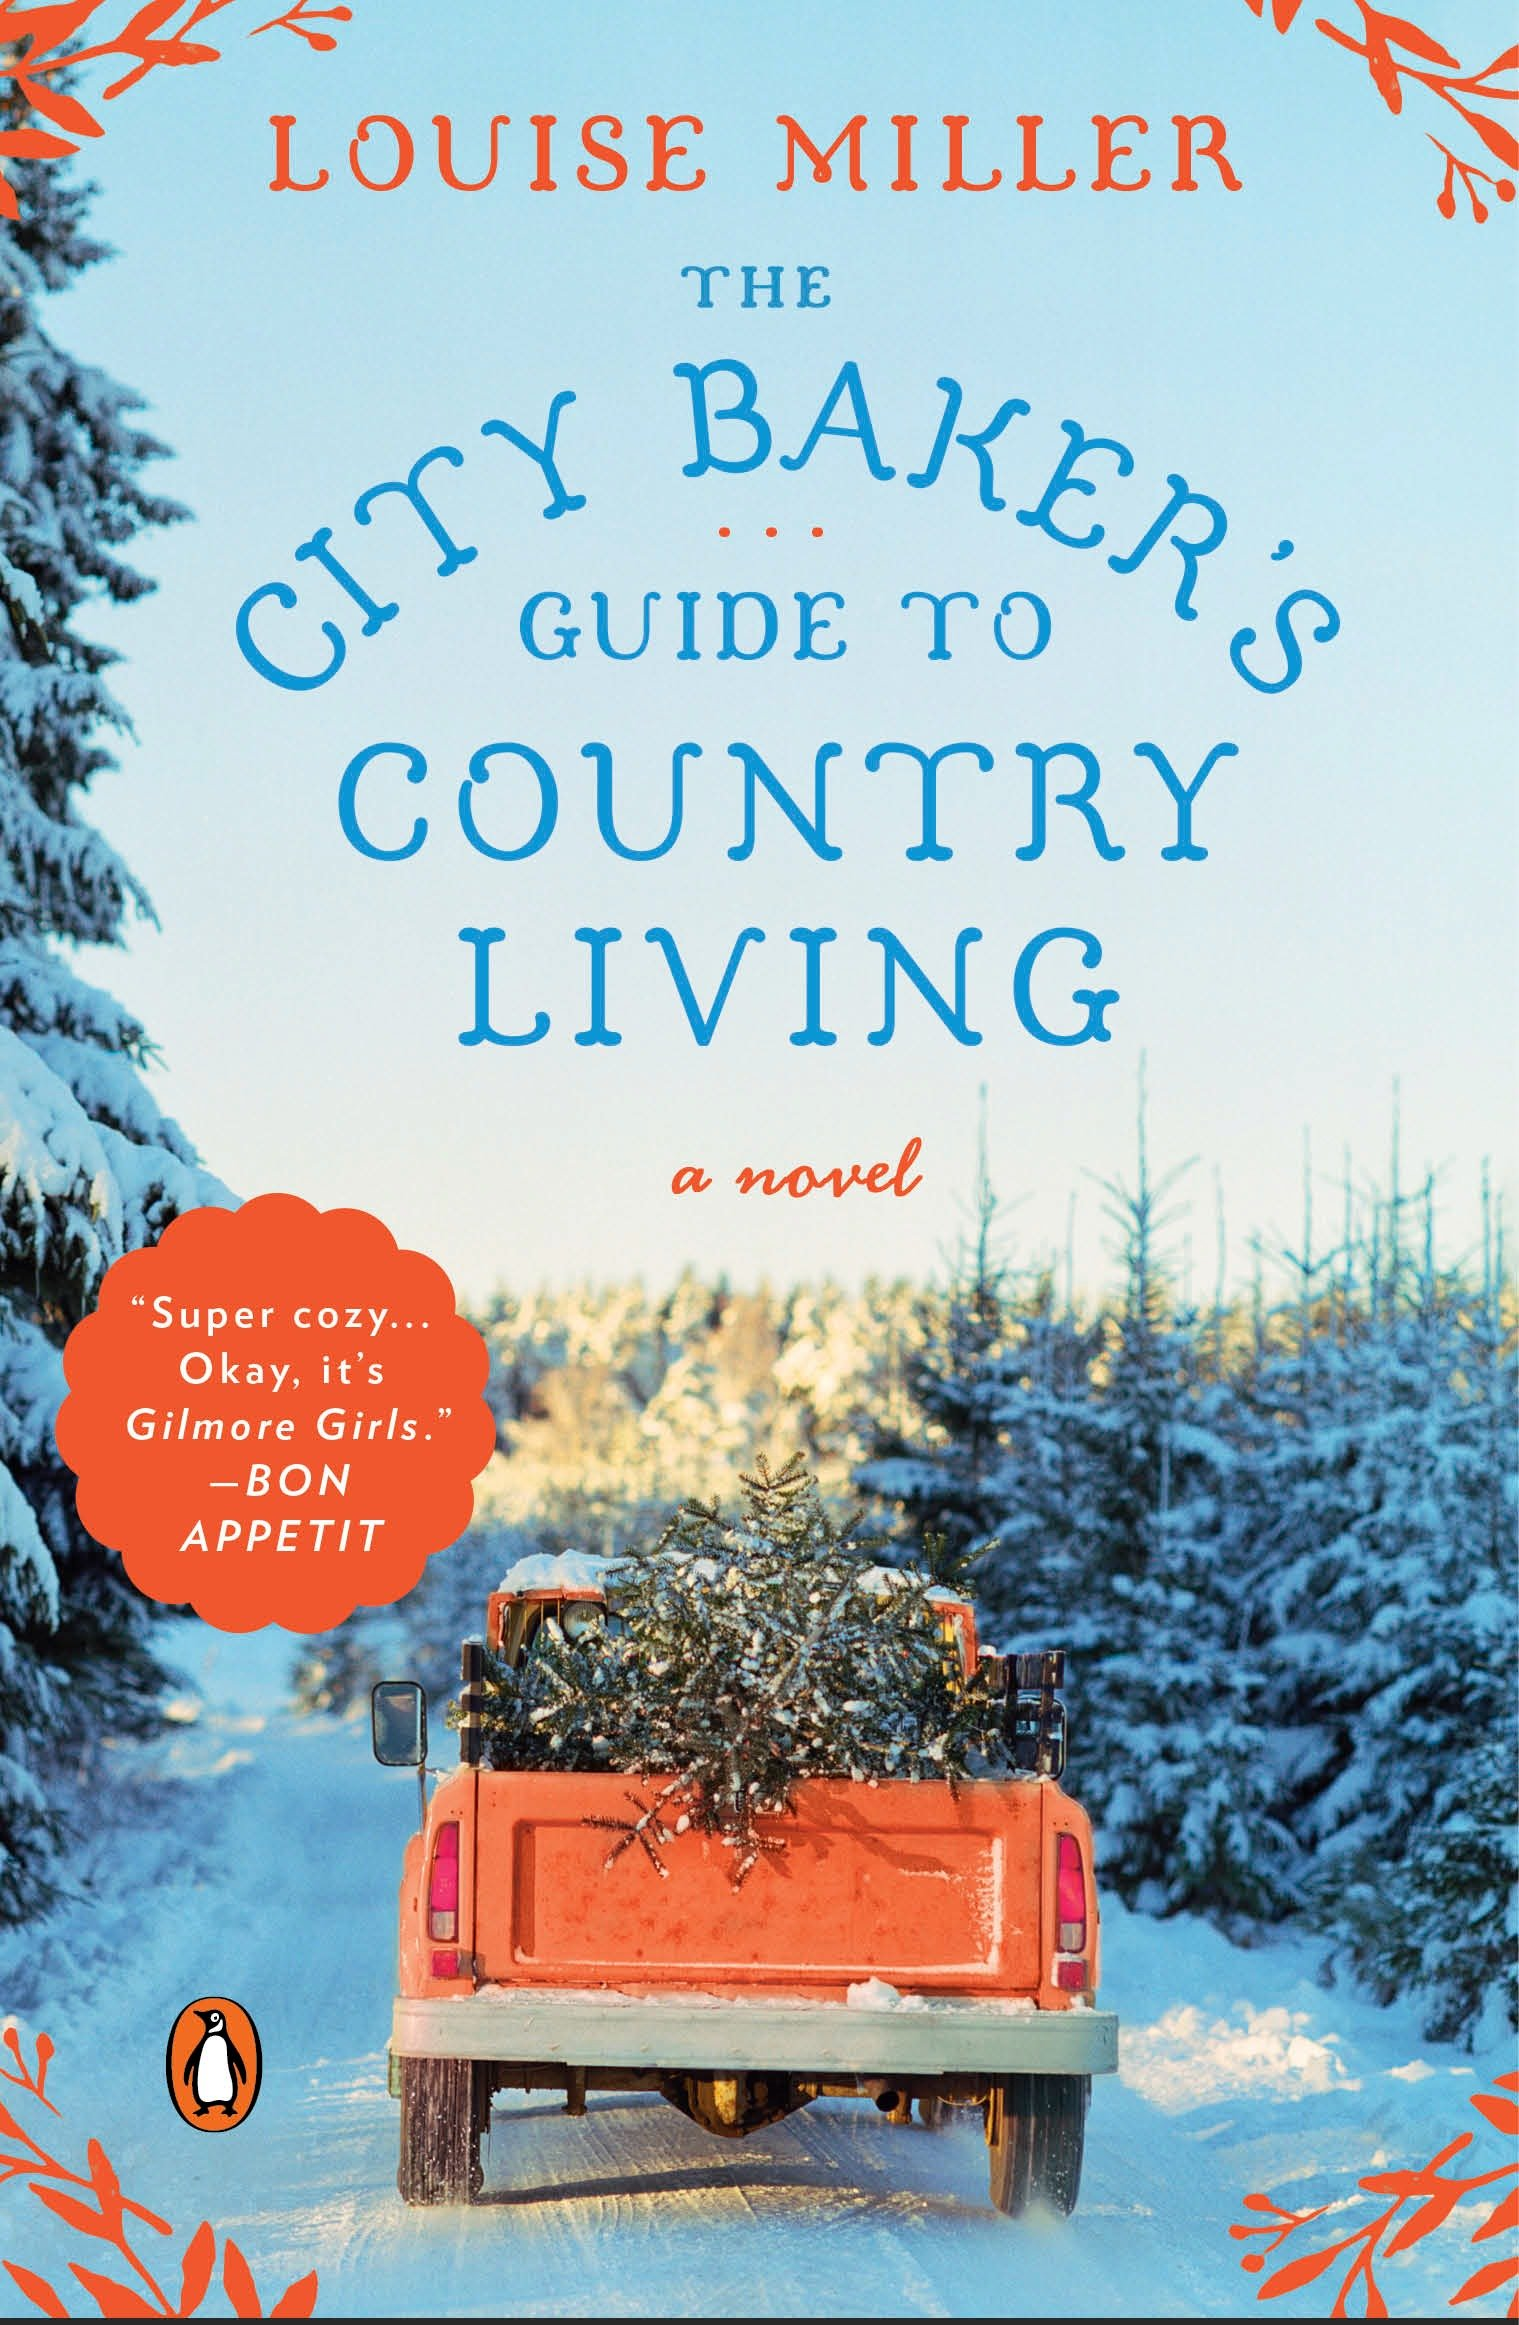 The City Baker's Guide to Country Living A Novel